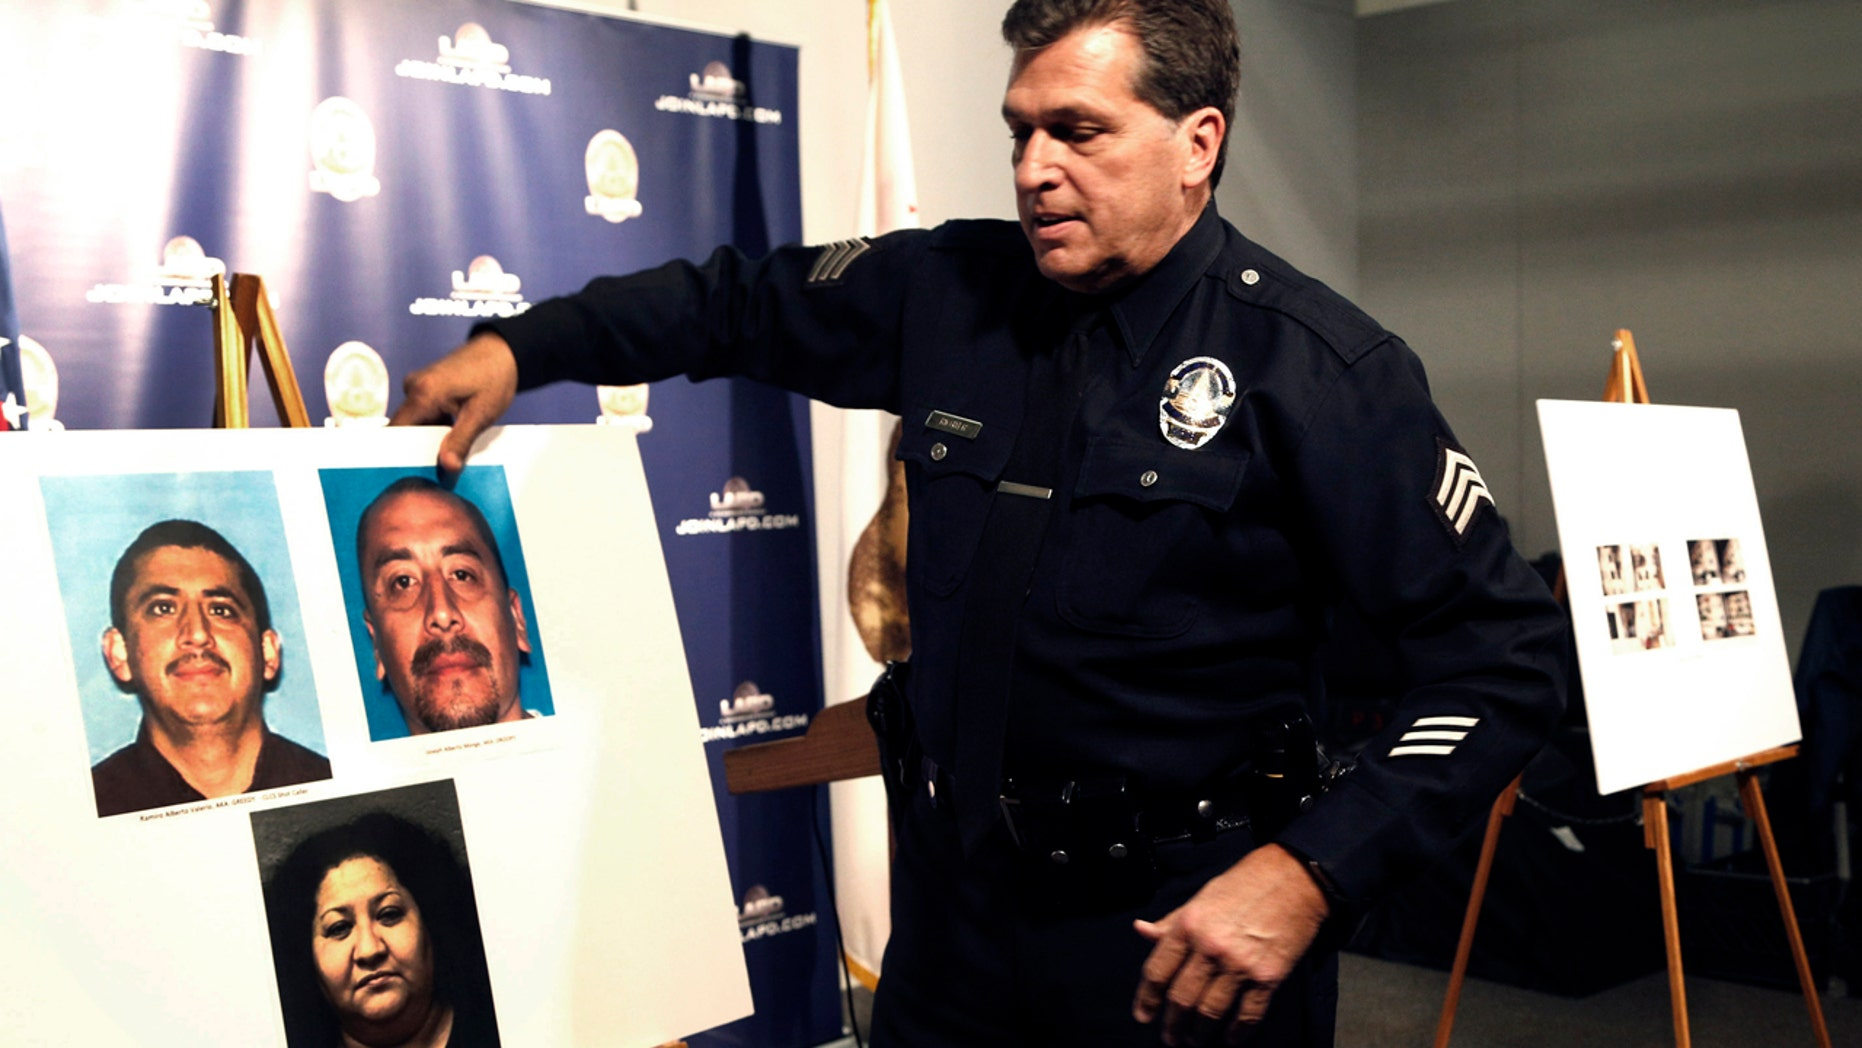 Feb. 6, 2017: Los Angeles police Sgt. Jack Richter displays photos of arson suspects from a 1993 fire prior to a news conference in Los Angeles